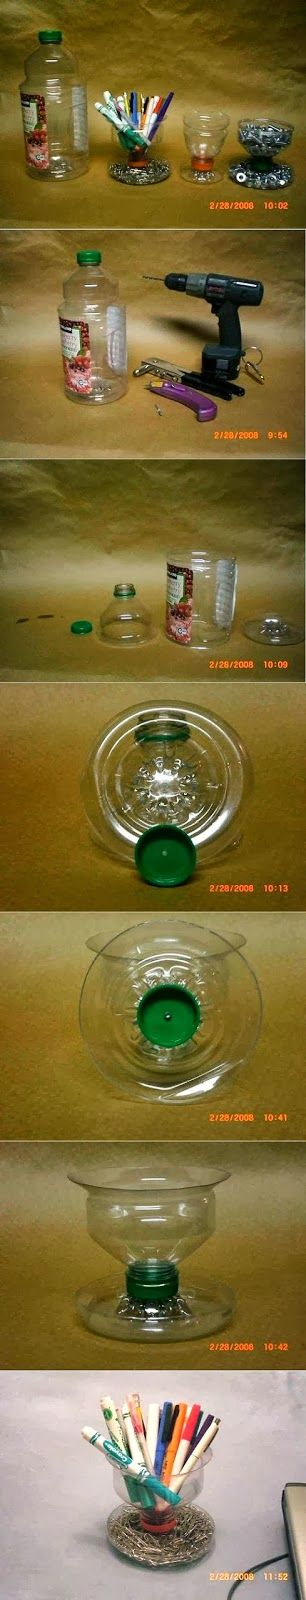 Recycling Plastic Bottle Pencil and Paper Clip